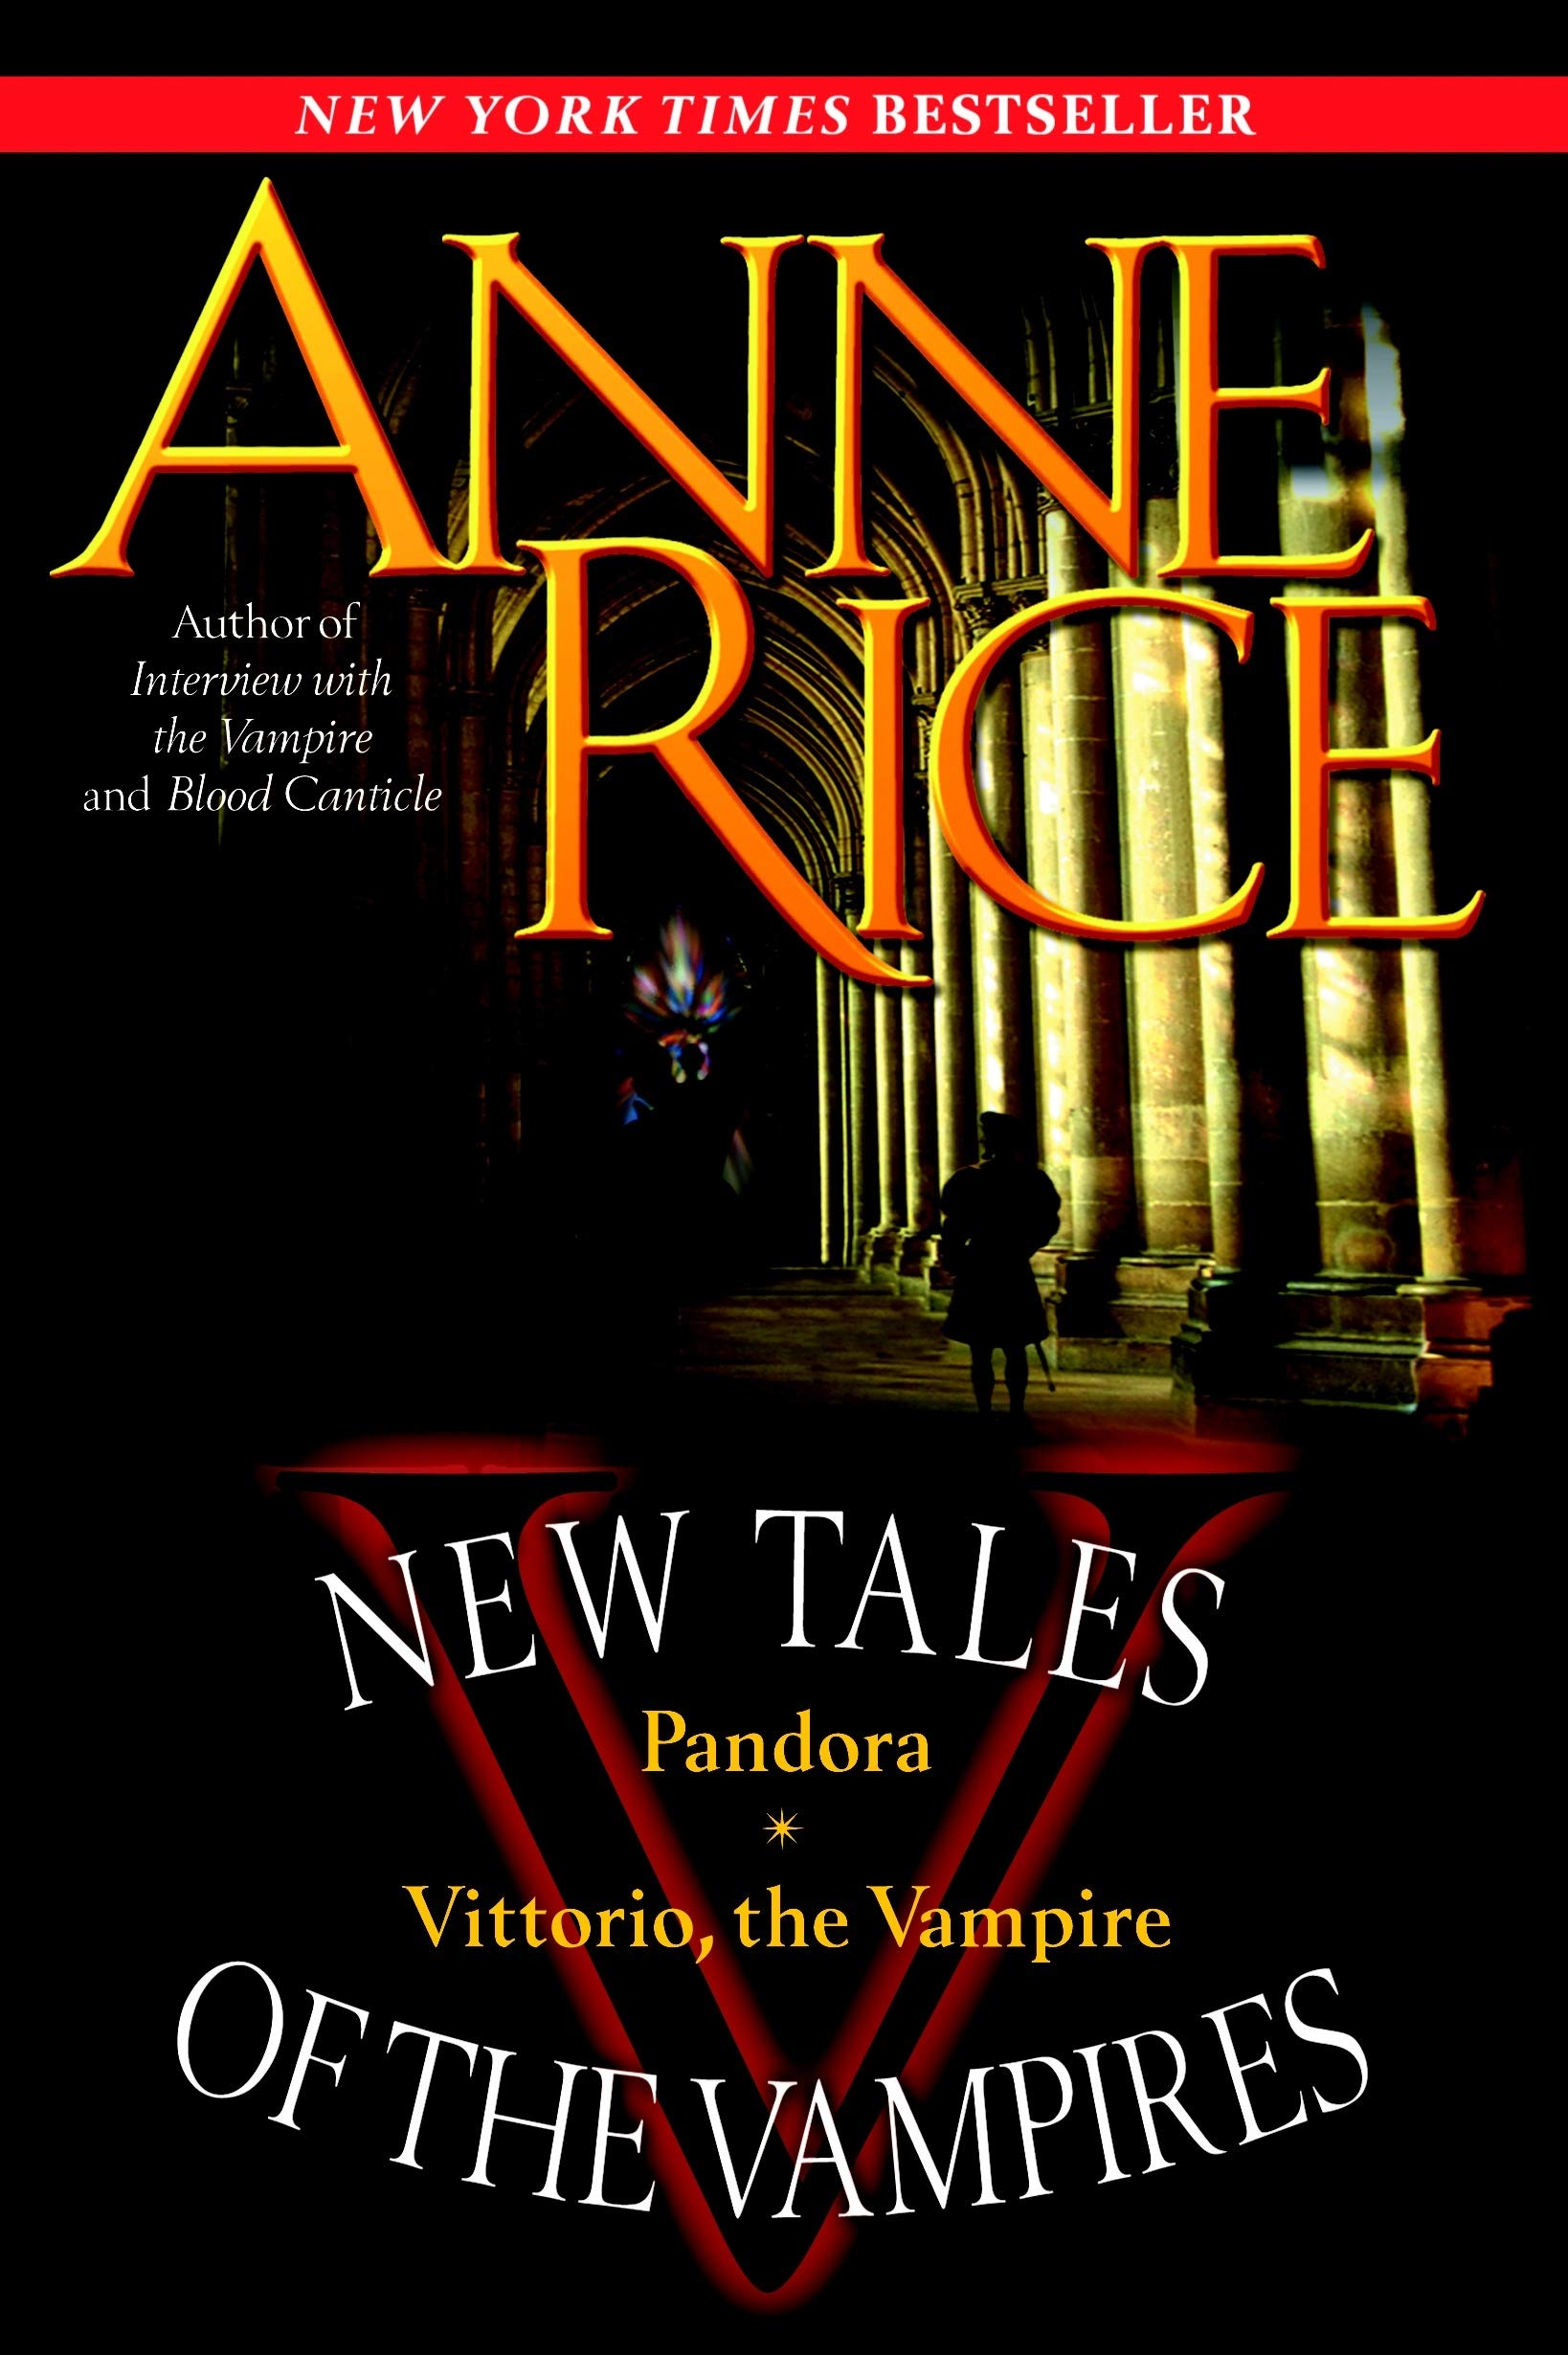 Ebook Vittorio The Vampire New Tales Of The Vampires 2 By Anne Rice